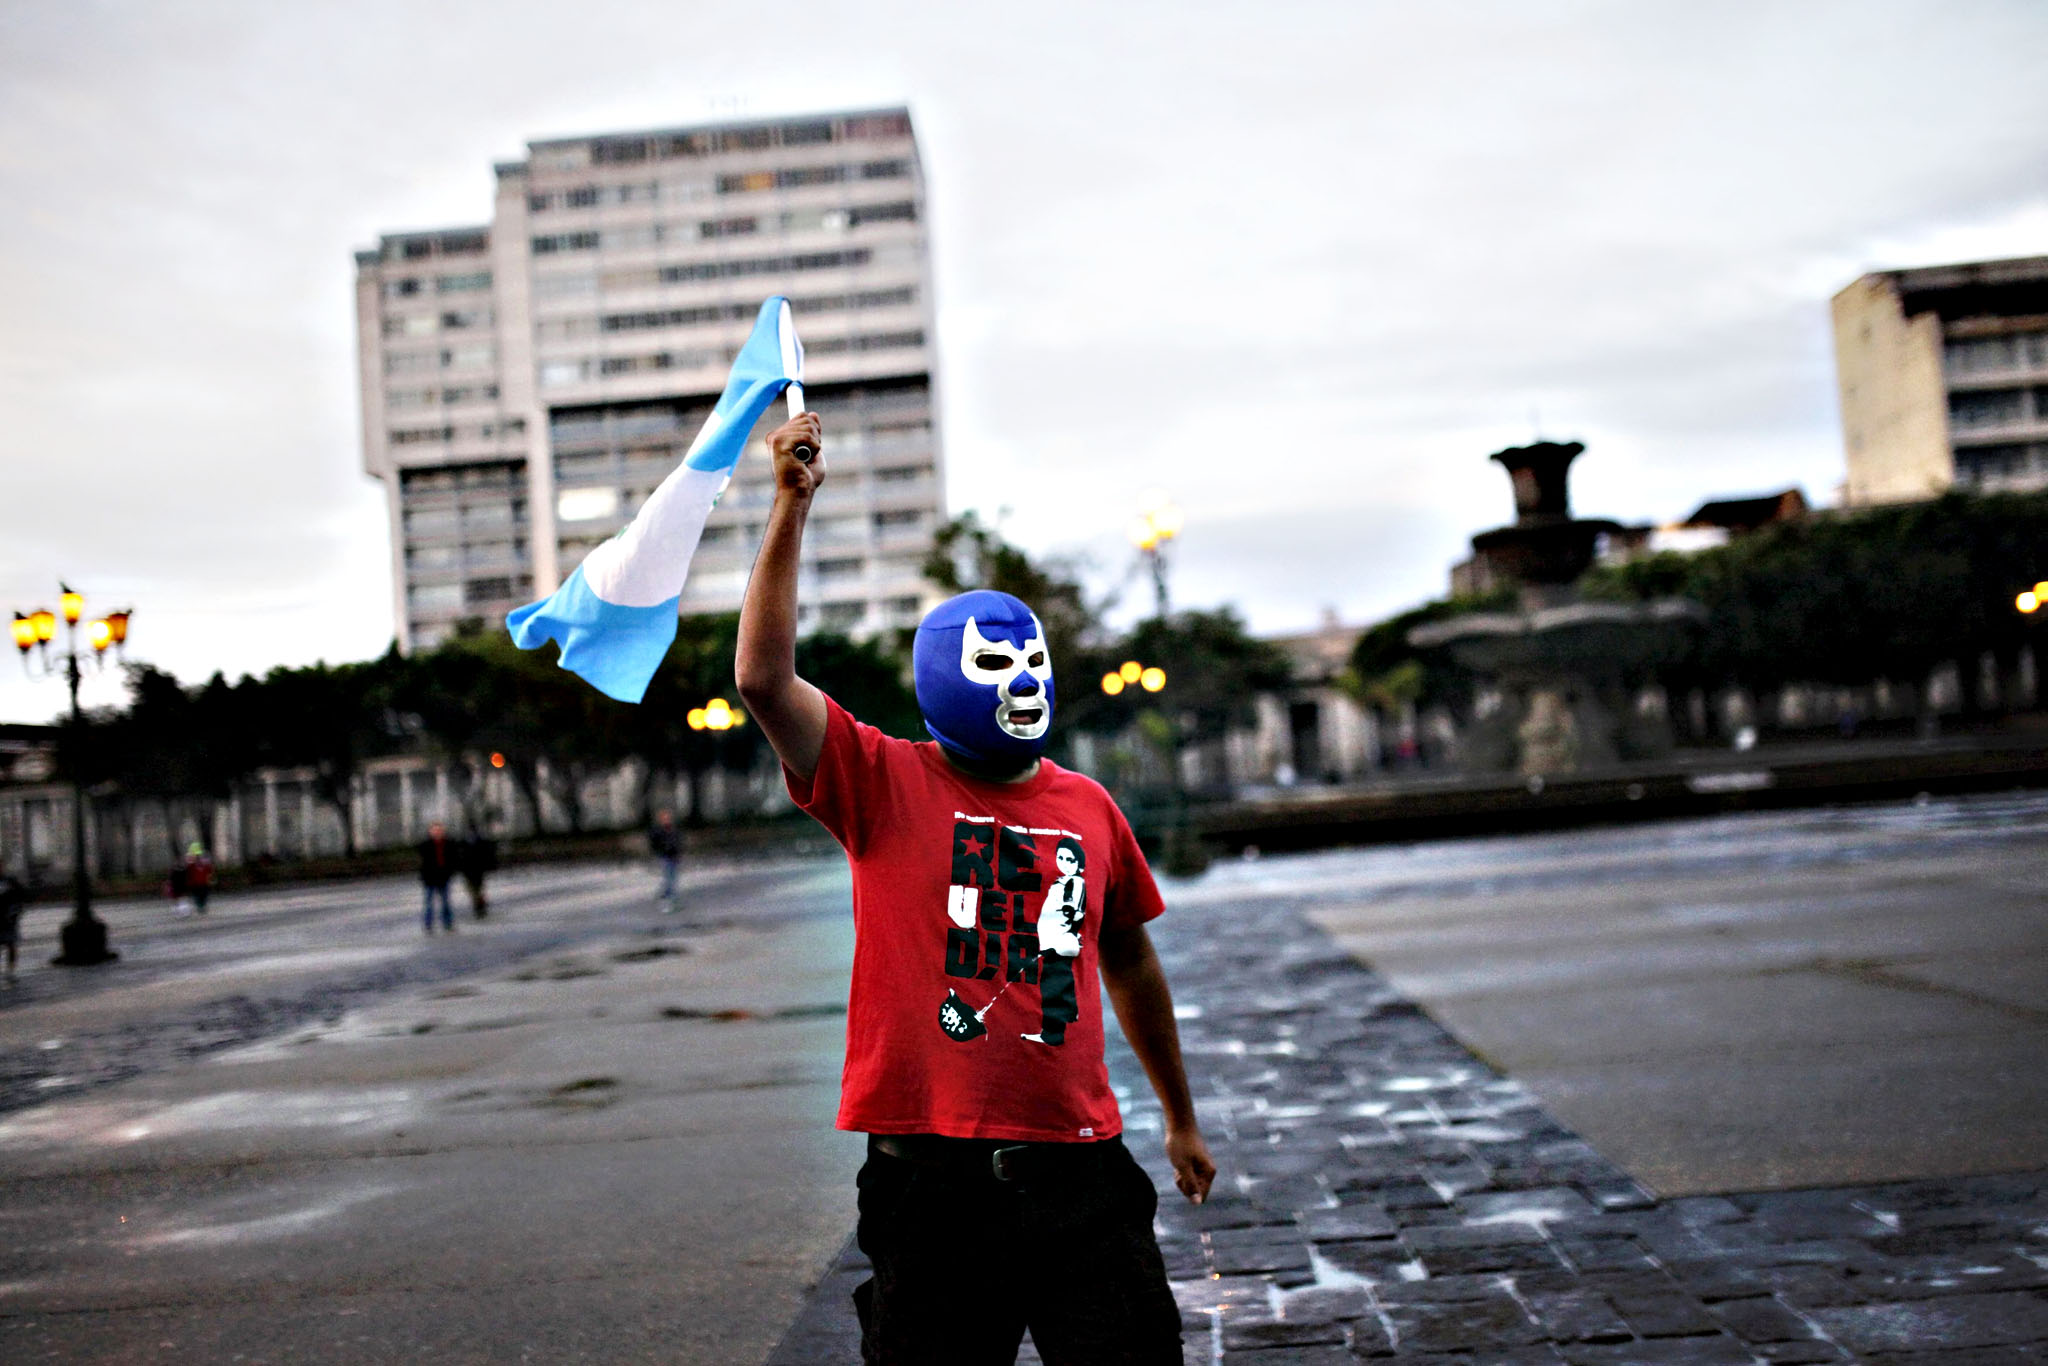 A man reacts to the resignation of President Otto Perez in Guatemala City, Guatemala September 3, 2015. Perez has resigned, his spokesman said on Thursday, hours before he is due to appear in court over a corruption scandal that has gutted his government and plunged the country into chaos days before a national election